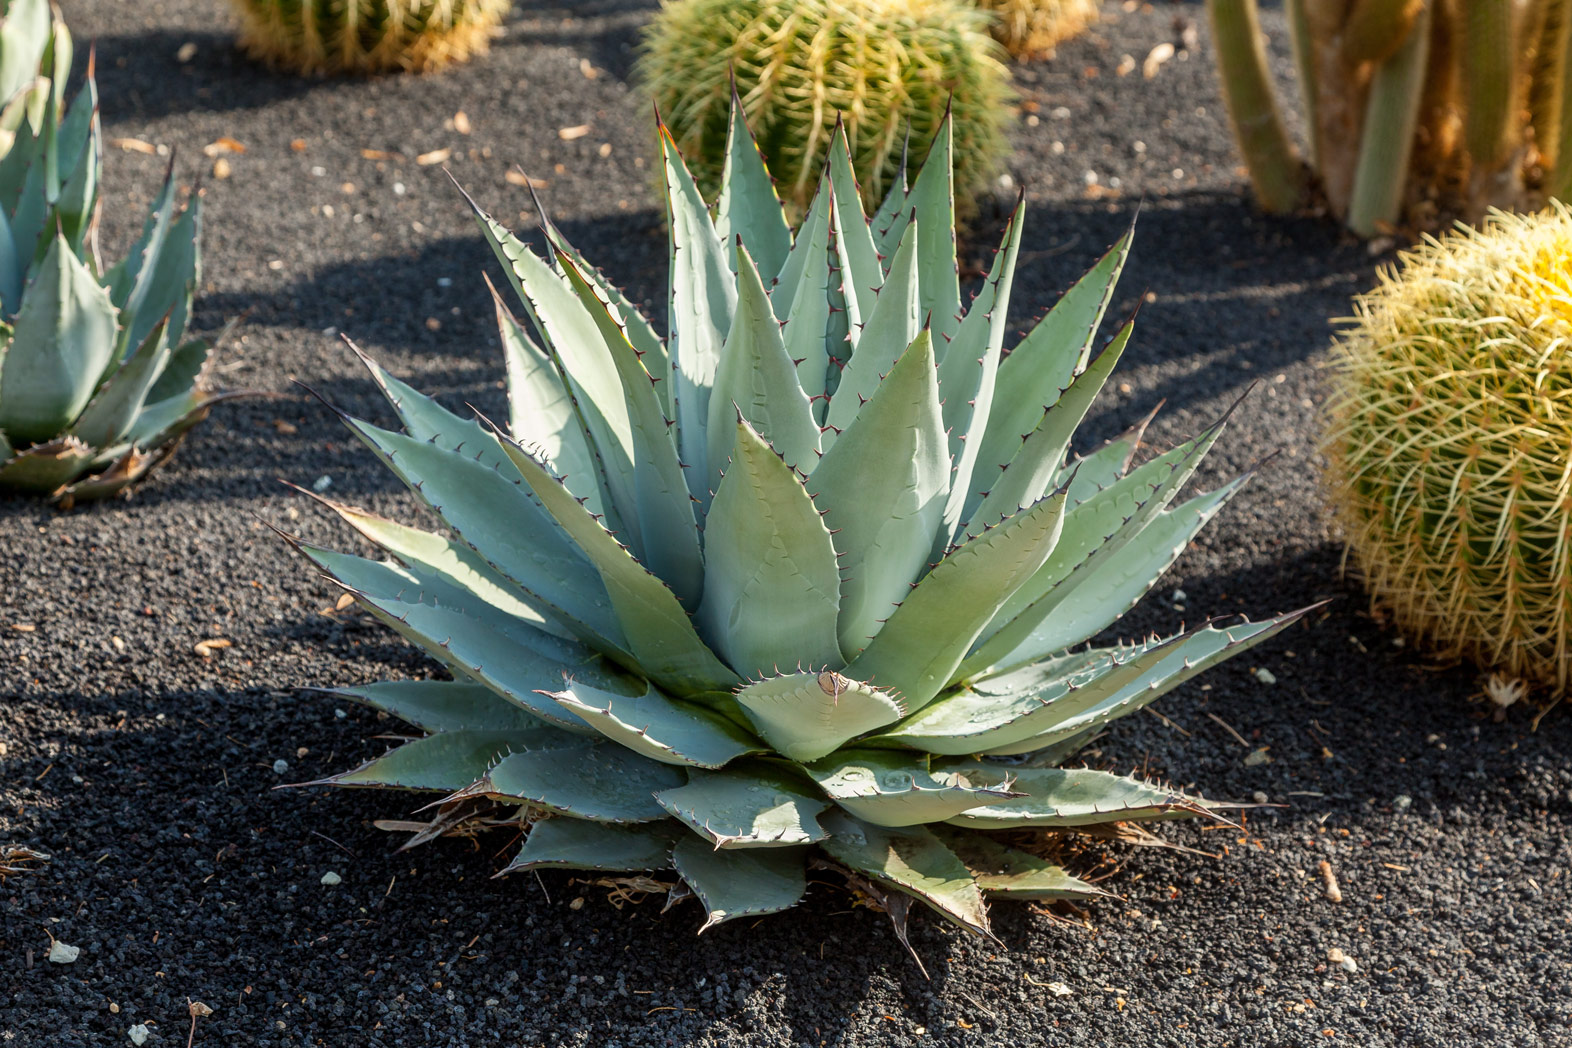 Parry's Agave